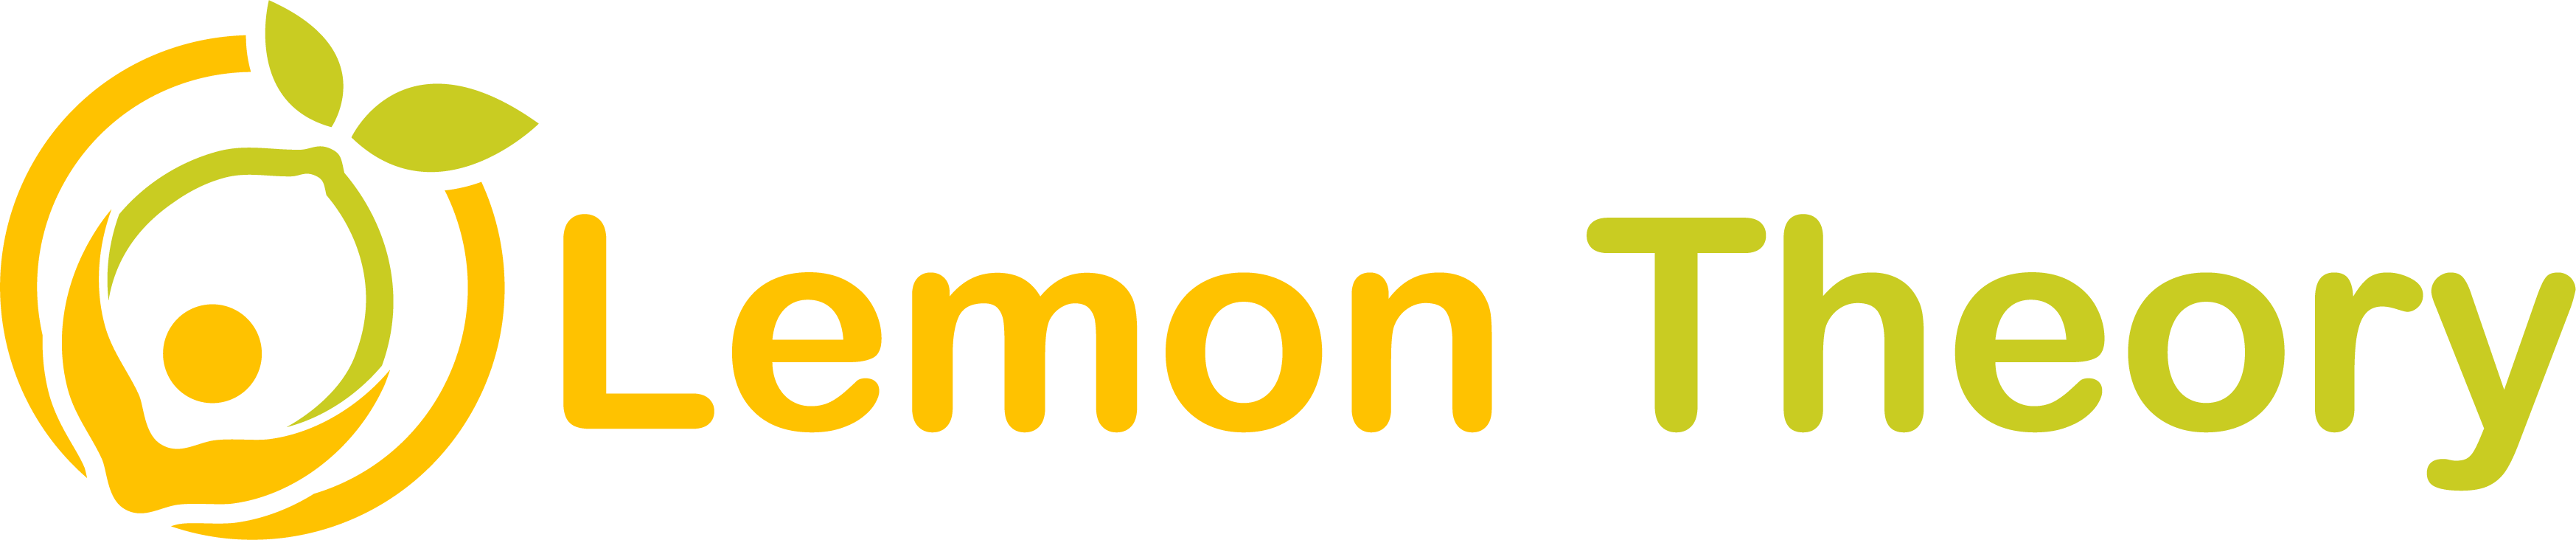 Lemon Theory